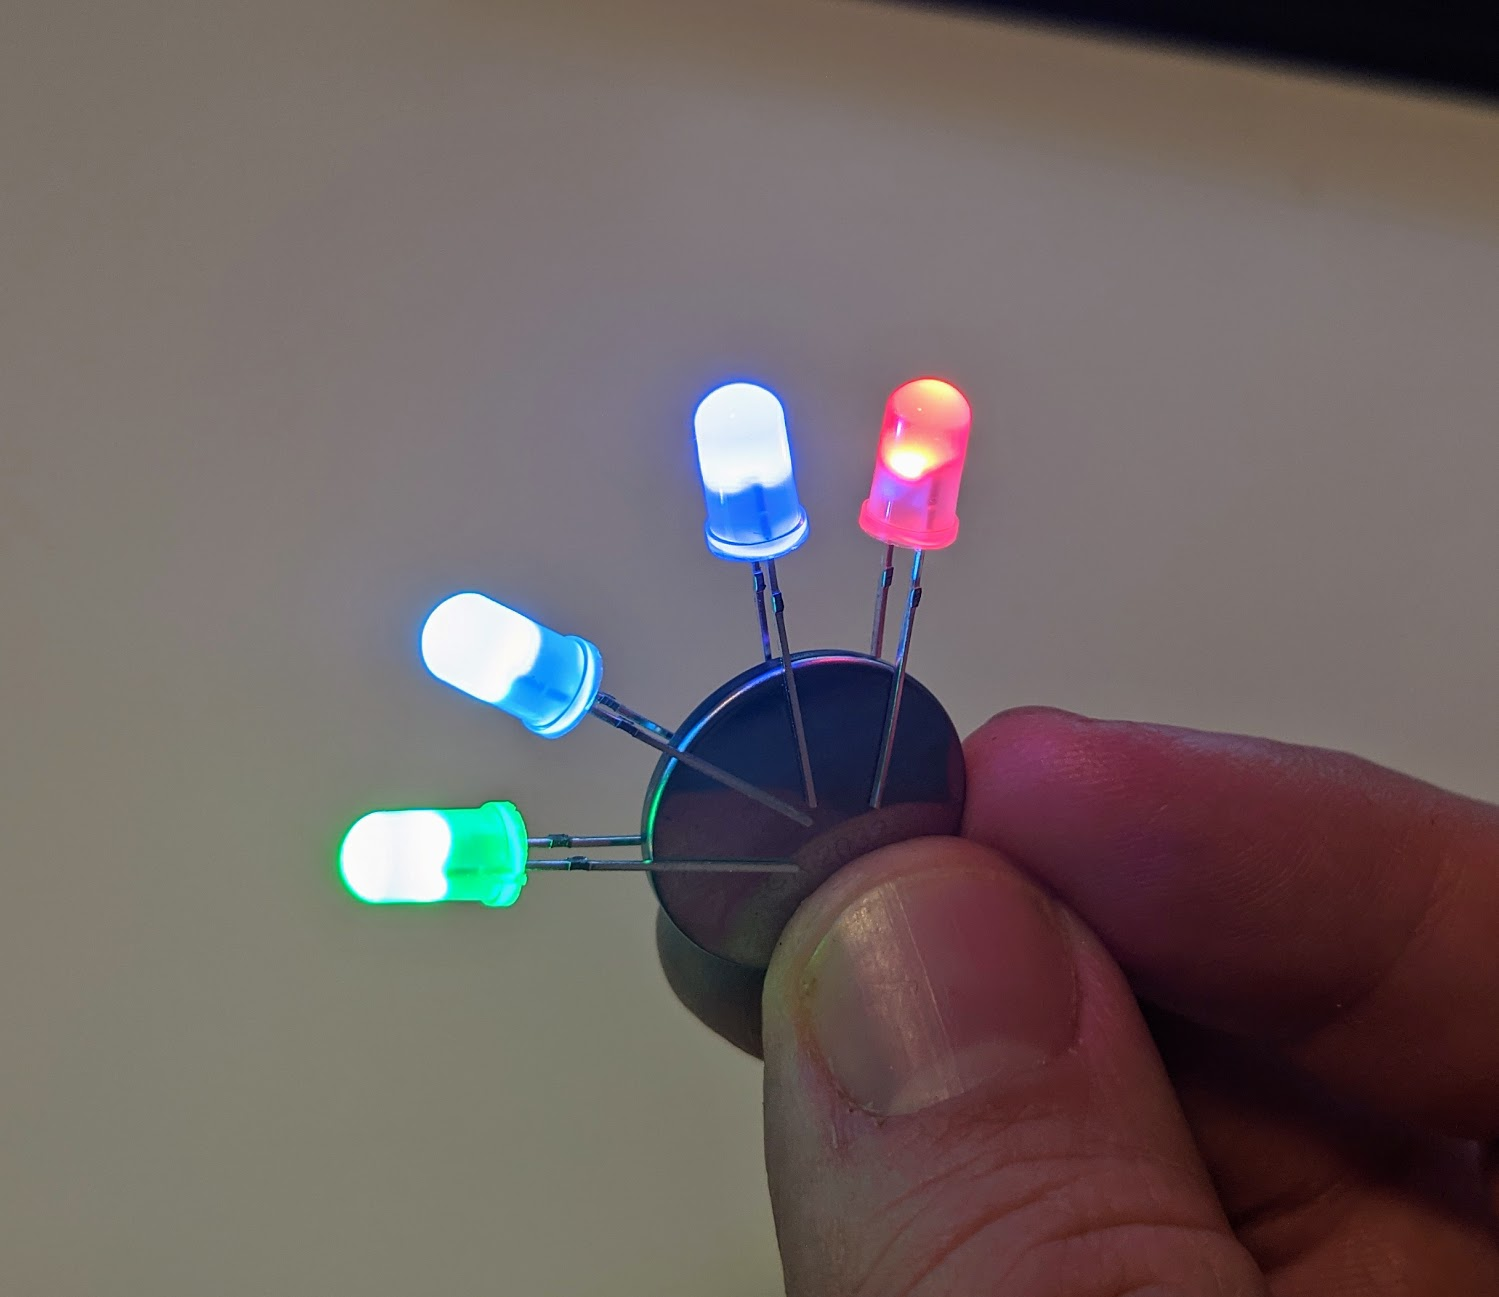 RGB LED - Color changing rainbow LED with slow color transition 5mm